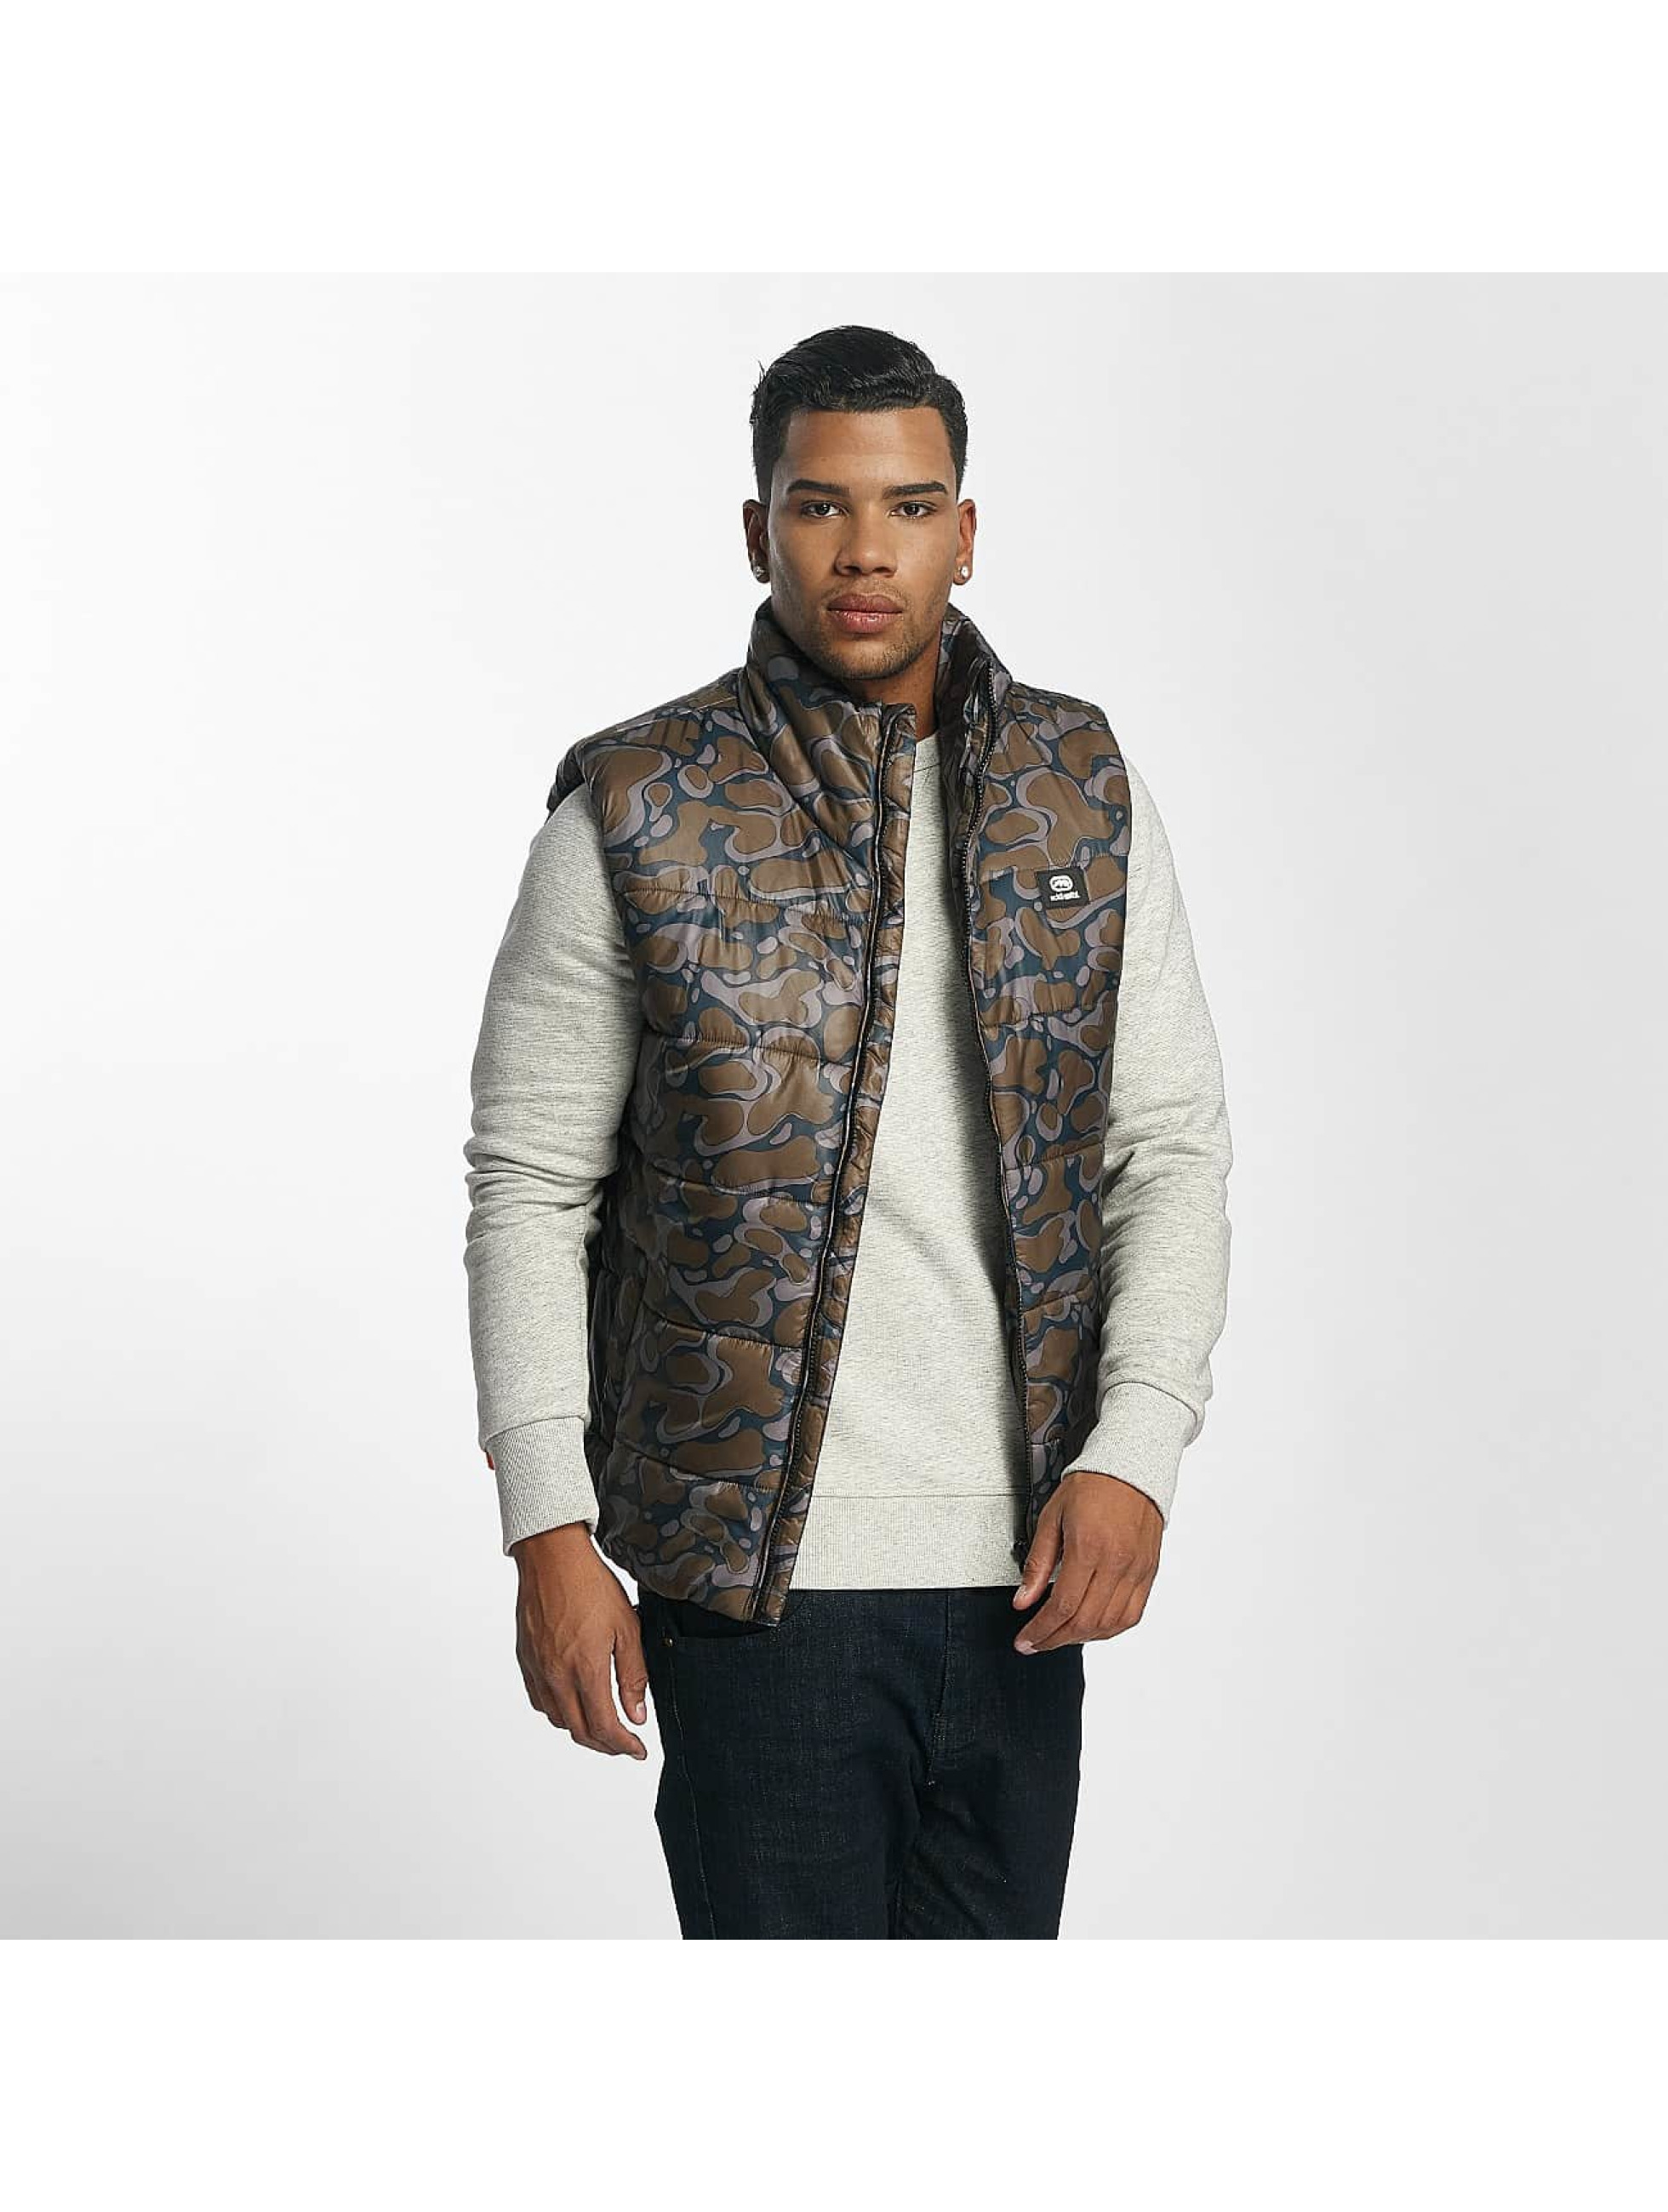 Ecko Unltd. / Vest Dr. Daddy in camouflage L